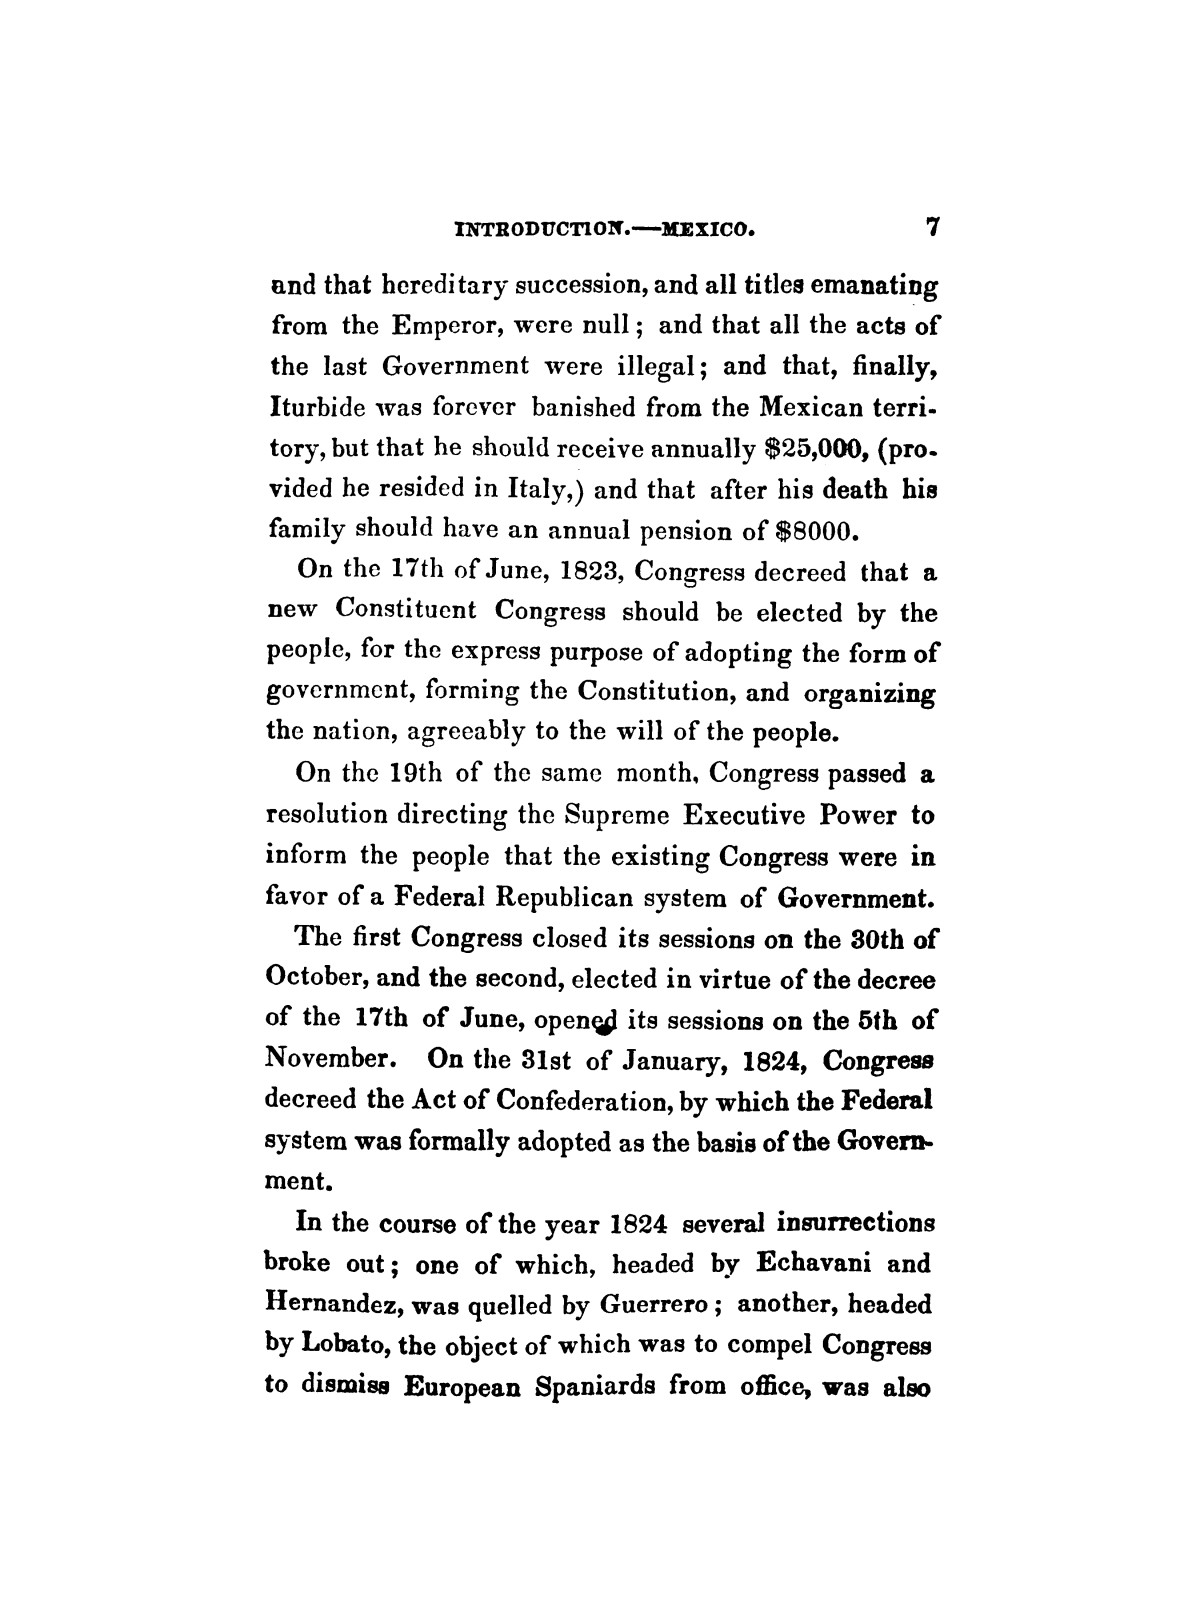 History of the revolution in Texas, particularly of the war of 1835 & '36; together with the latest geographical, topographical, and statistical accounts of the country, from the most authentic sources. Also, an appendix. By the Rev. C. Newell.                                                                                                      [Sequence #]: 19 of 227